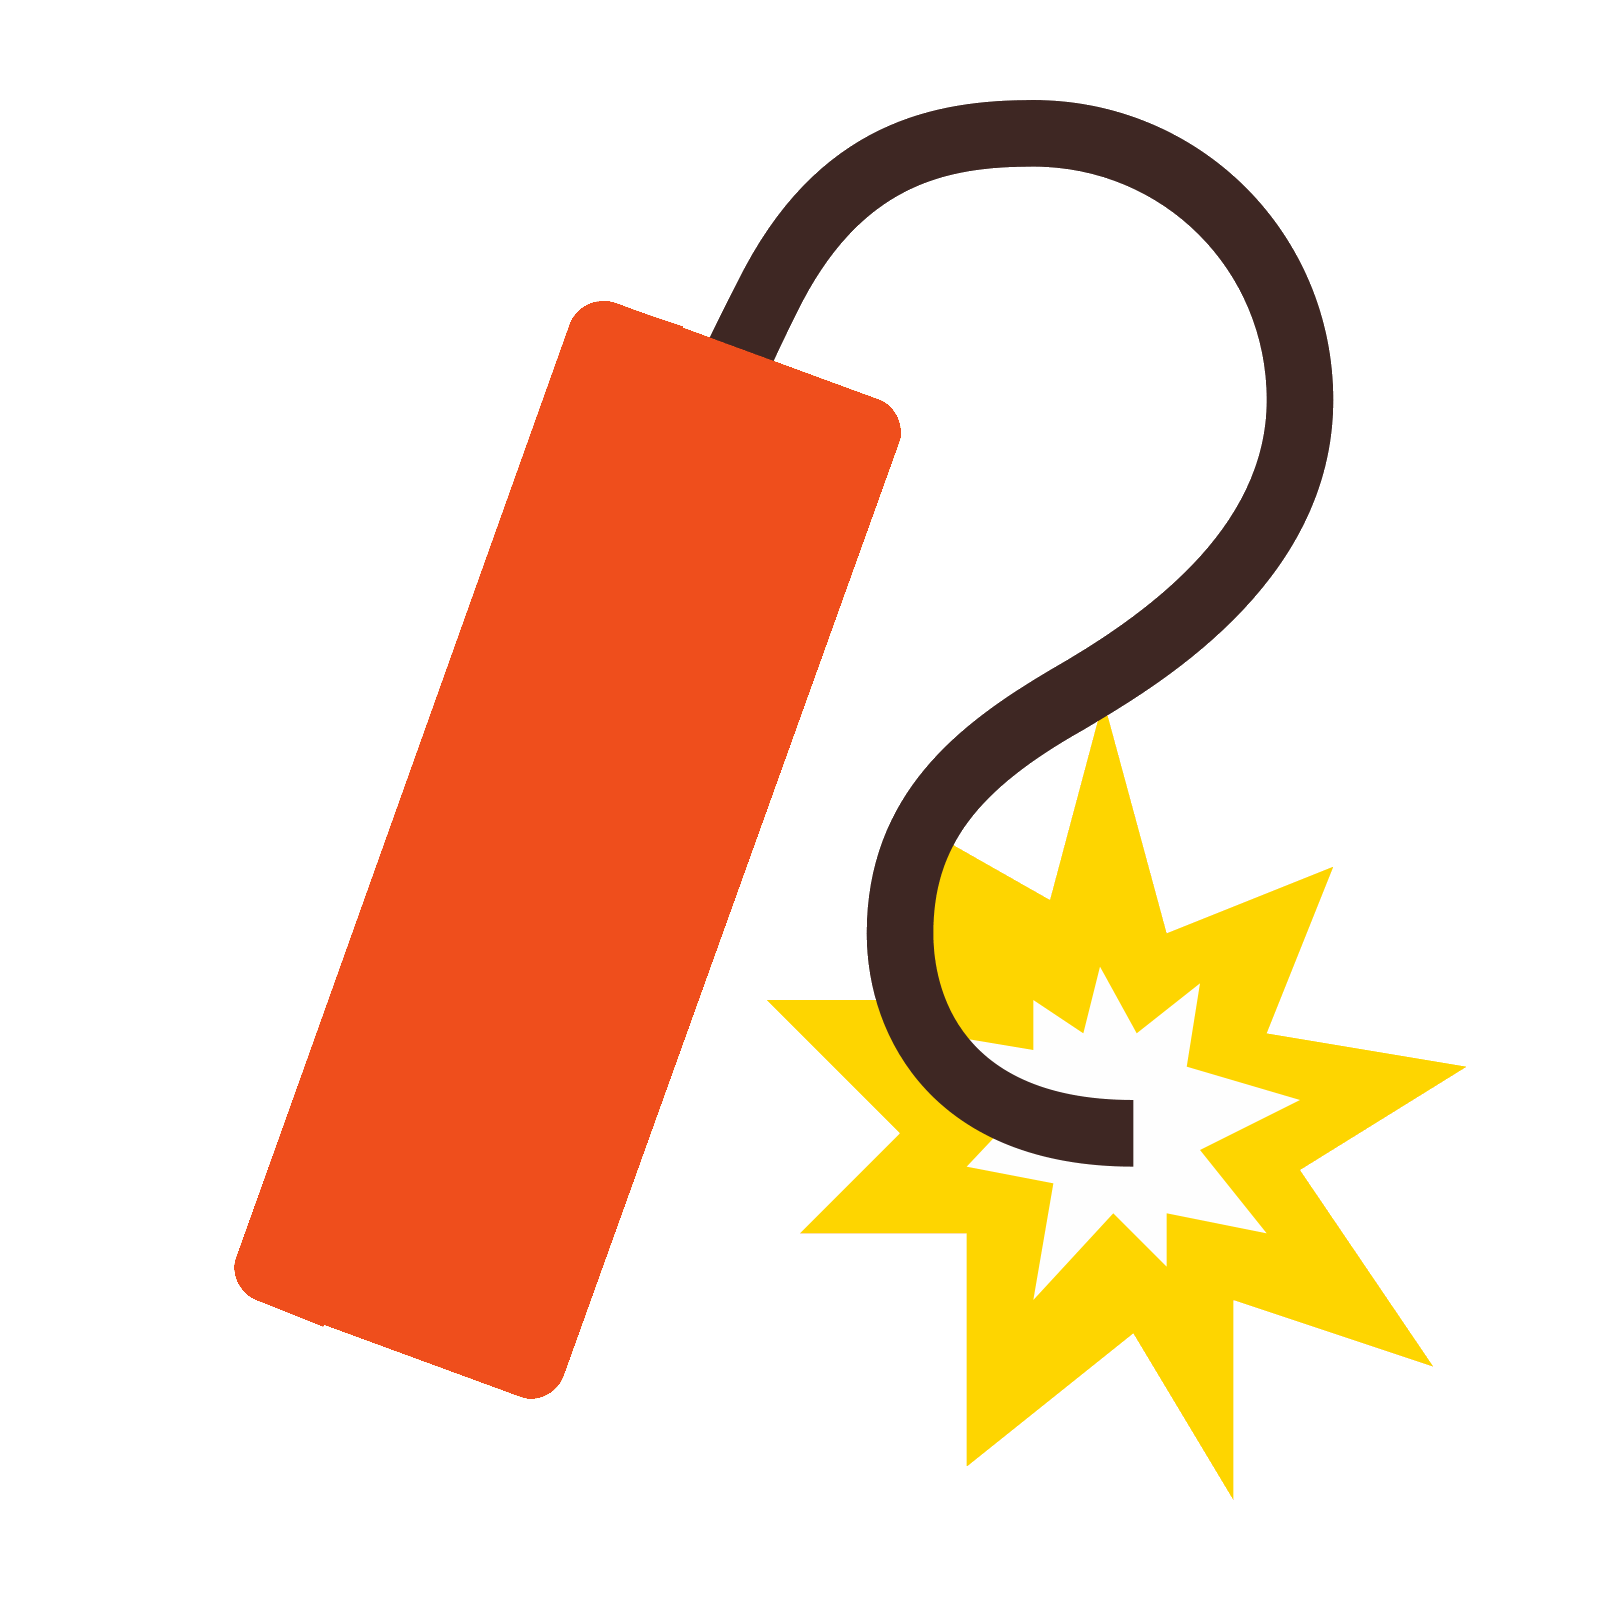 Dynamite vector. Icon free download png royalty free library